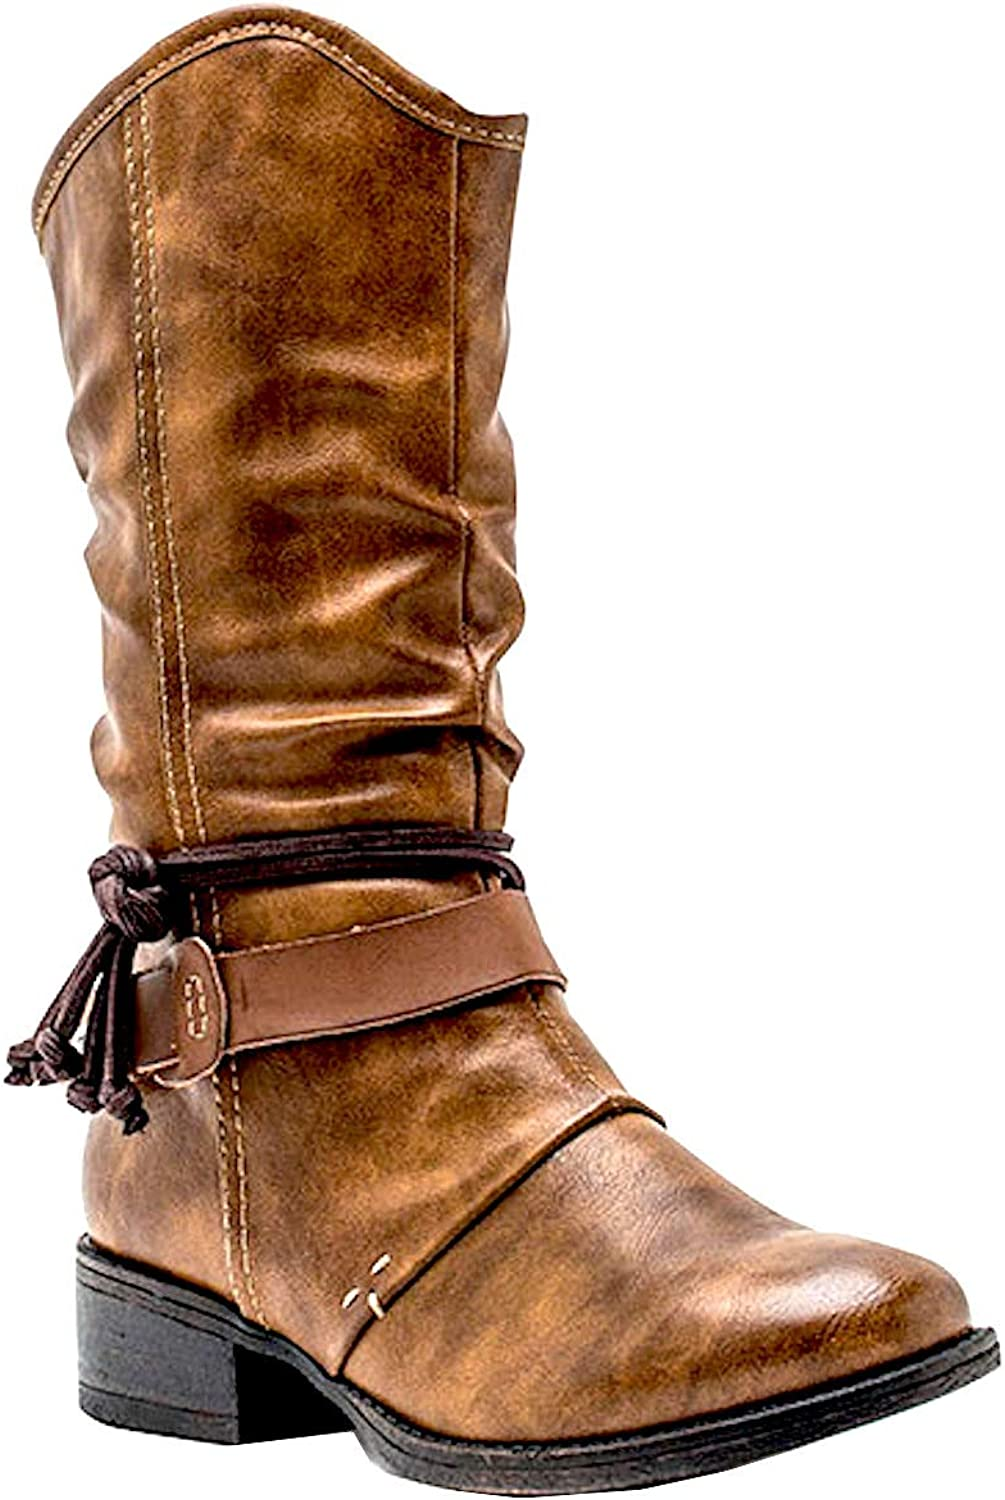 Gc shoes Women's Dustin Round Toe Tassel Detail Leather Mid-Calf Boot